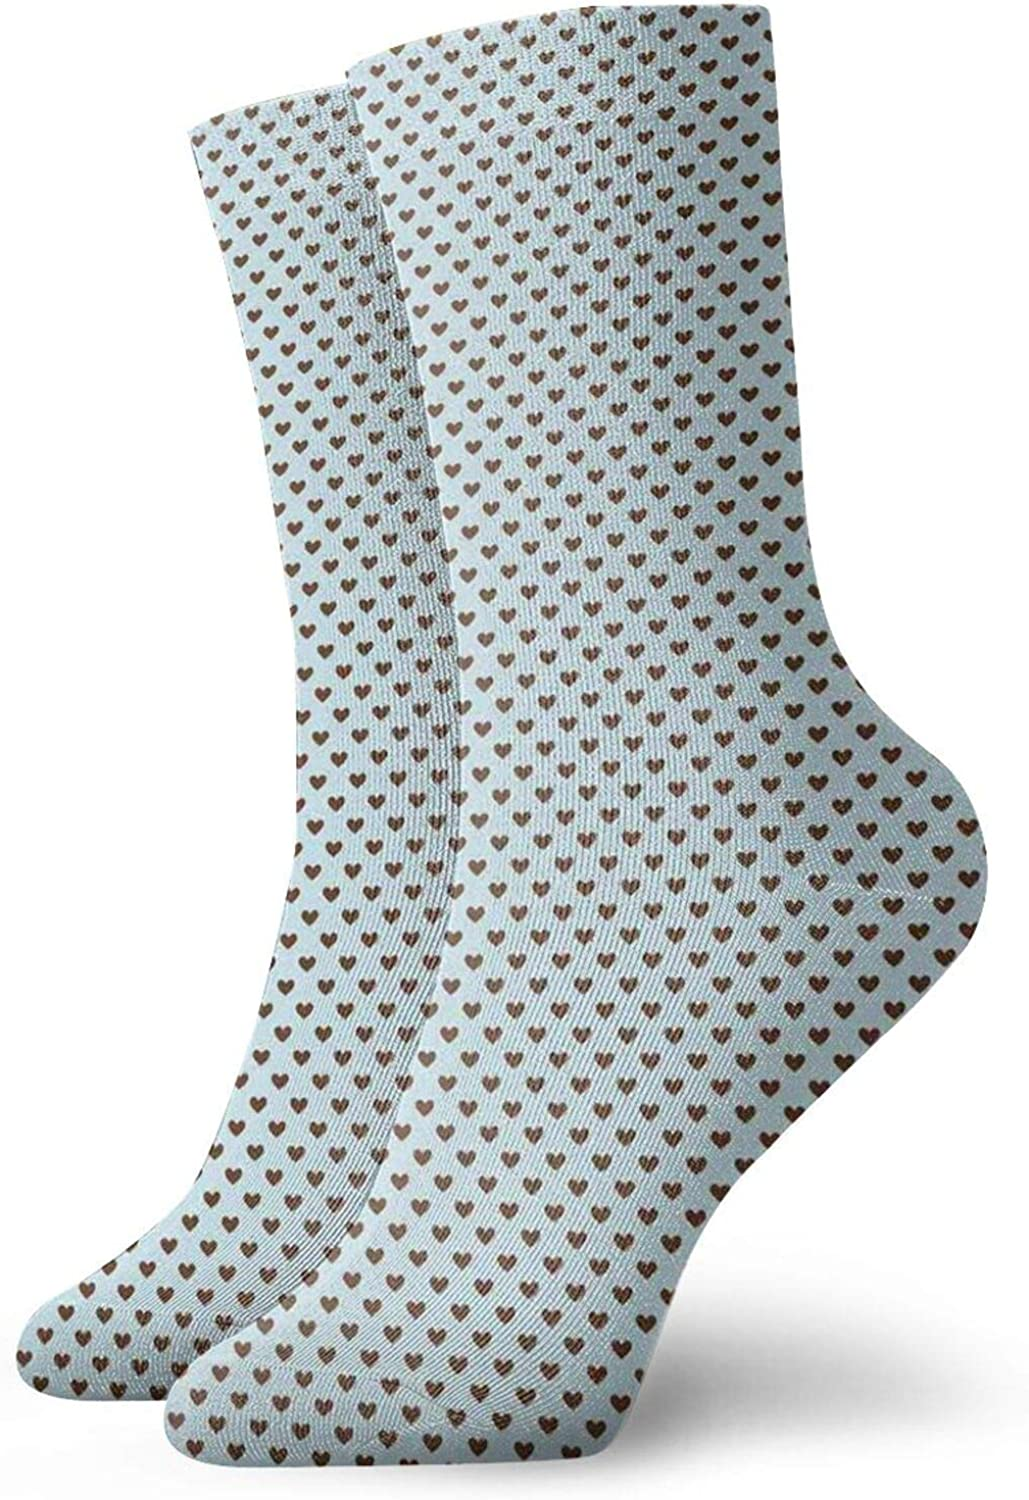 Compression High Socks-Little Hearts In Brown With Distressed Look Romantic Love Theme Best for Running,Athletic,Hiking,Travel,Flight